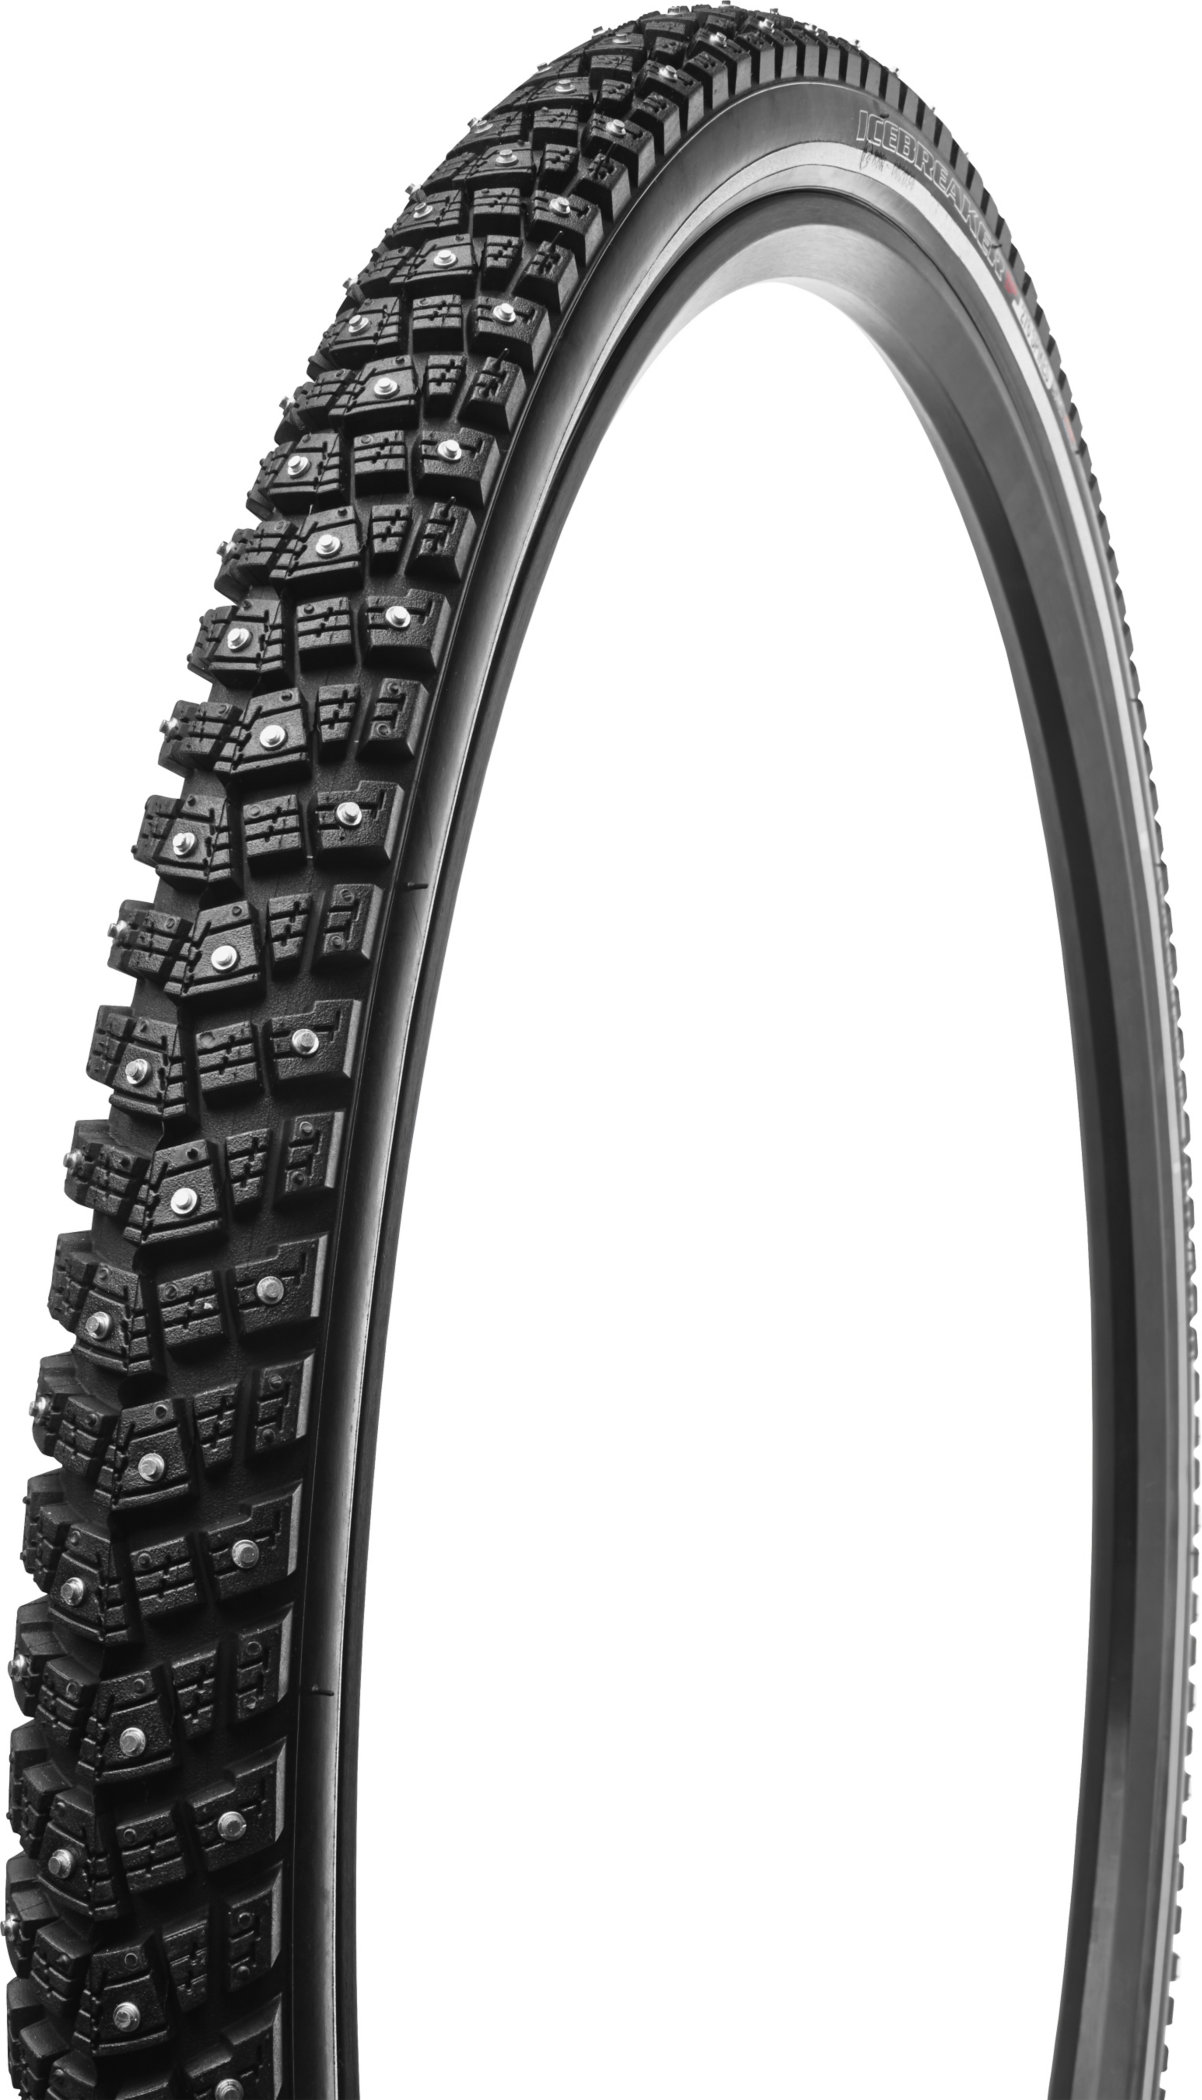 SPECIALIZED ICEBREAKER 276 FULL STUD REFLECT TIRE 700X38C - SPECIALIZED ICEBREAKER 276 FULL STUD REFLECT TIRE 700X38C